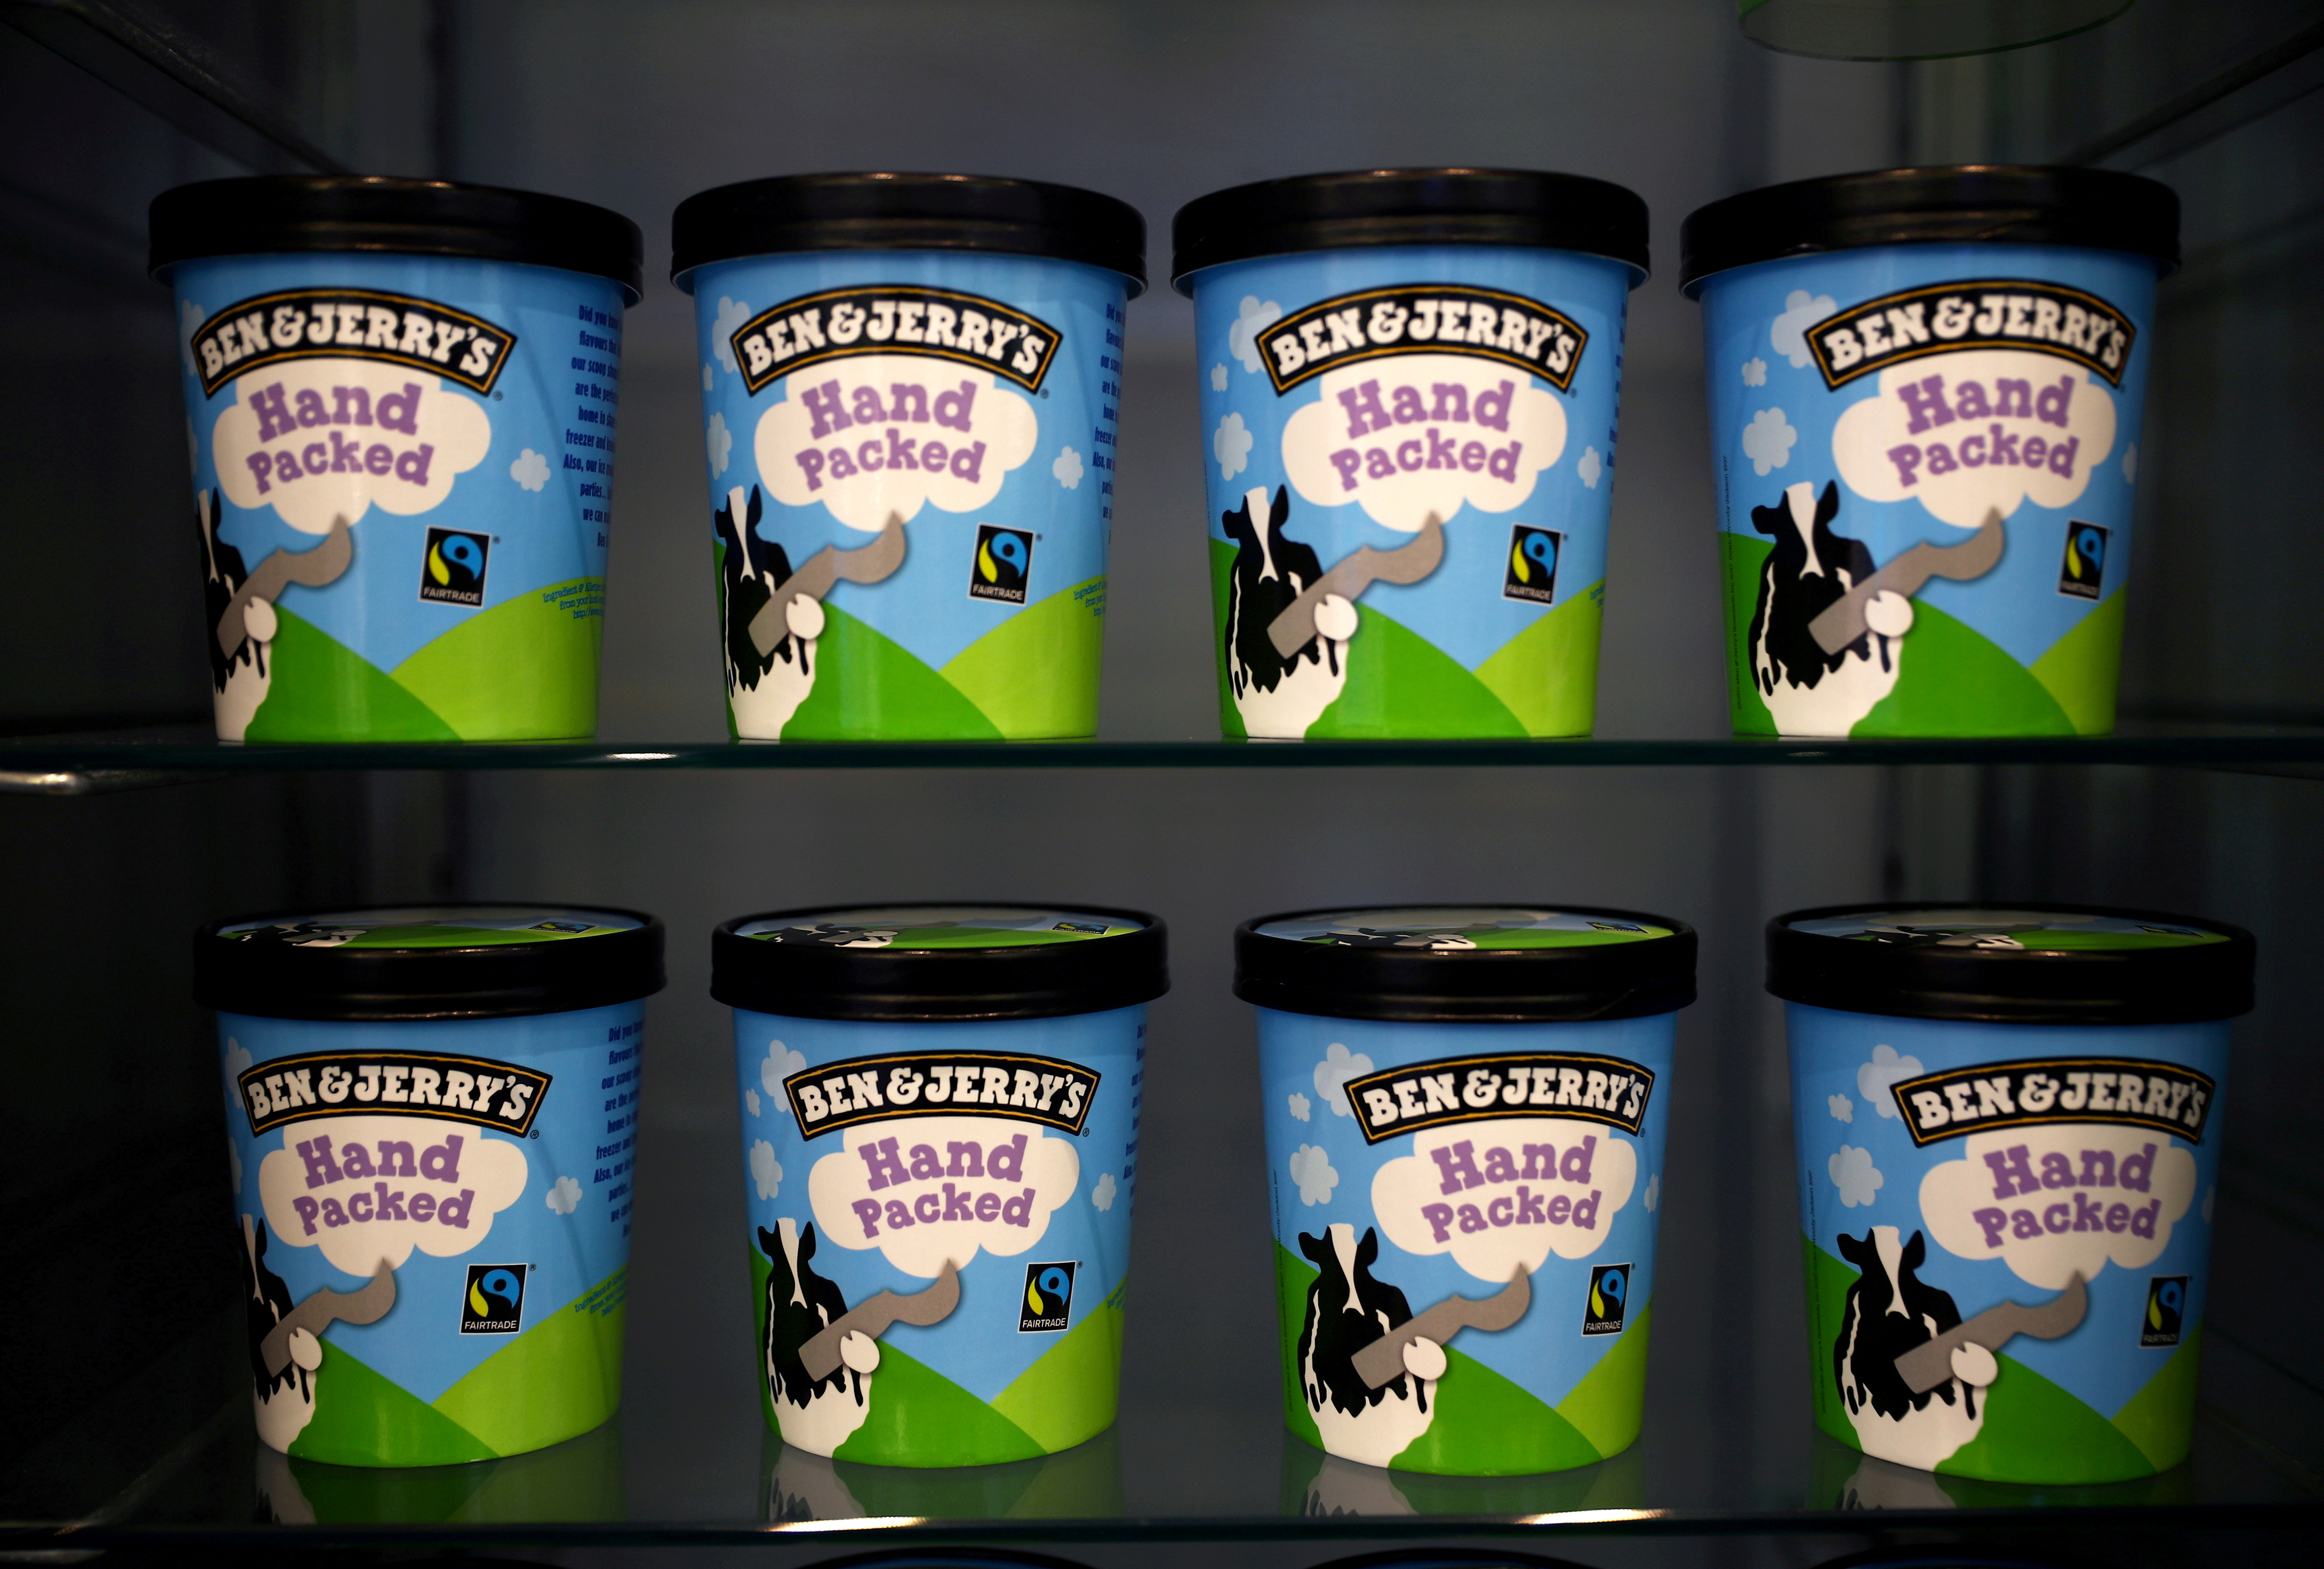 Tubs of Ben & Jerry's ice cream, a Unilever brand, are seen at their shop in London, Britain, October 5, 2020. REUTERS/Hannah McKay/File Photo